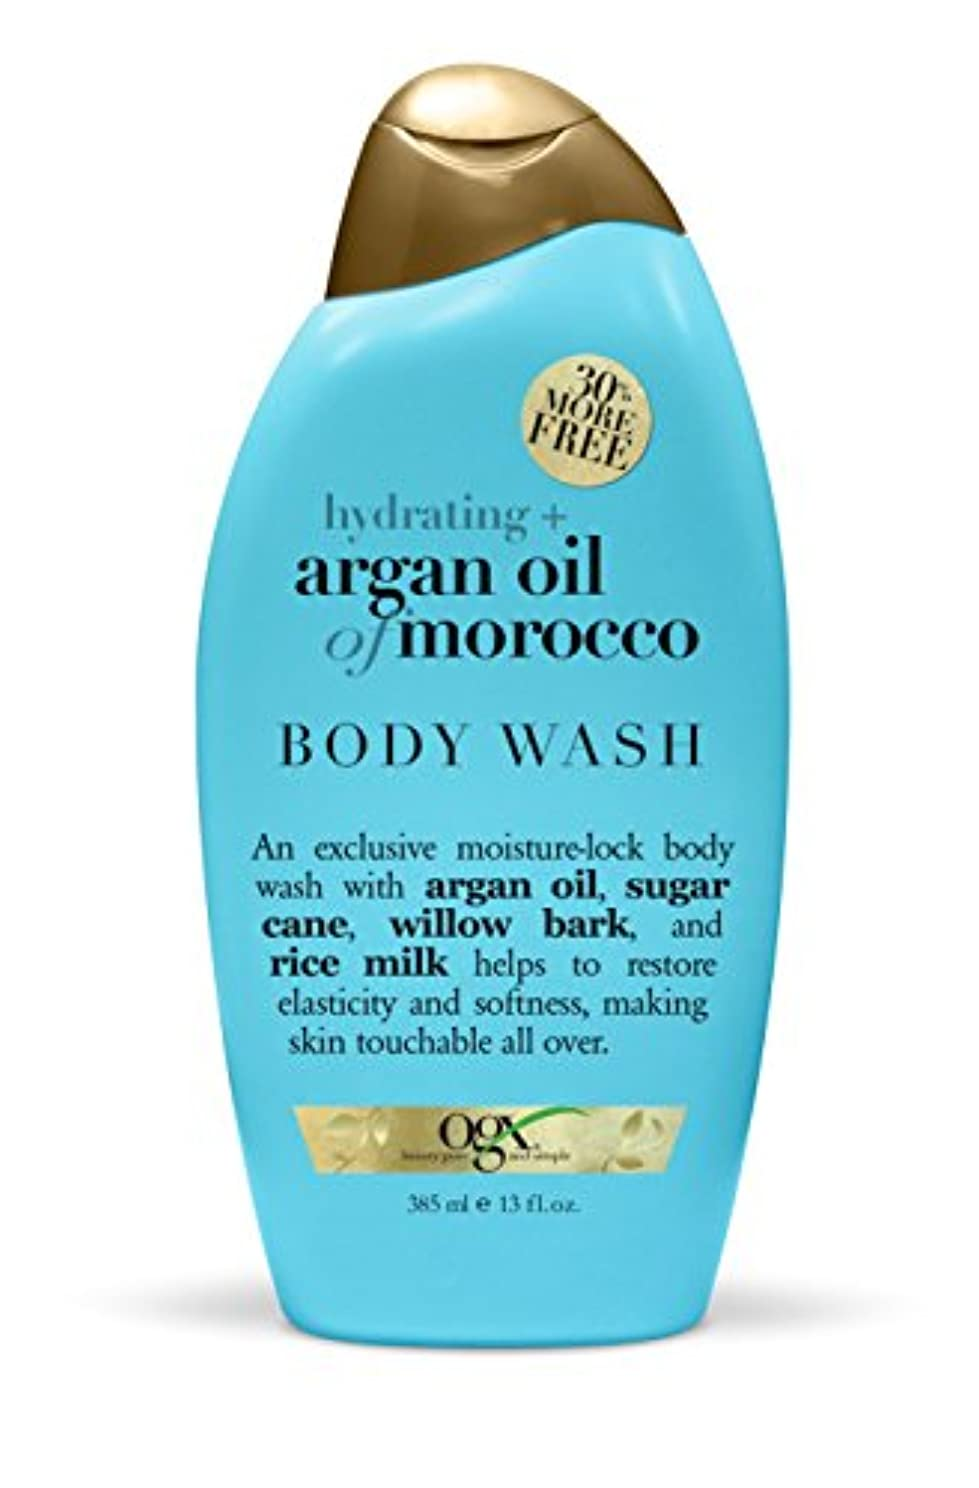 剃る戦い可能性Organix Body Wash Moroccan Argan Oil 385 ml (Hydrating) (並行輸入品)